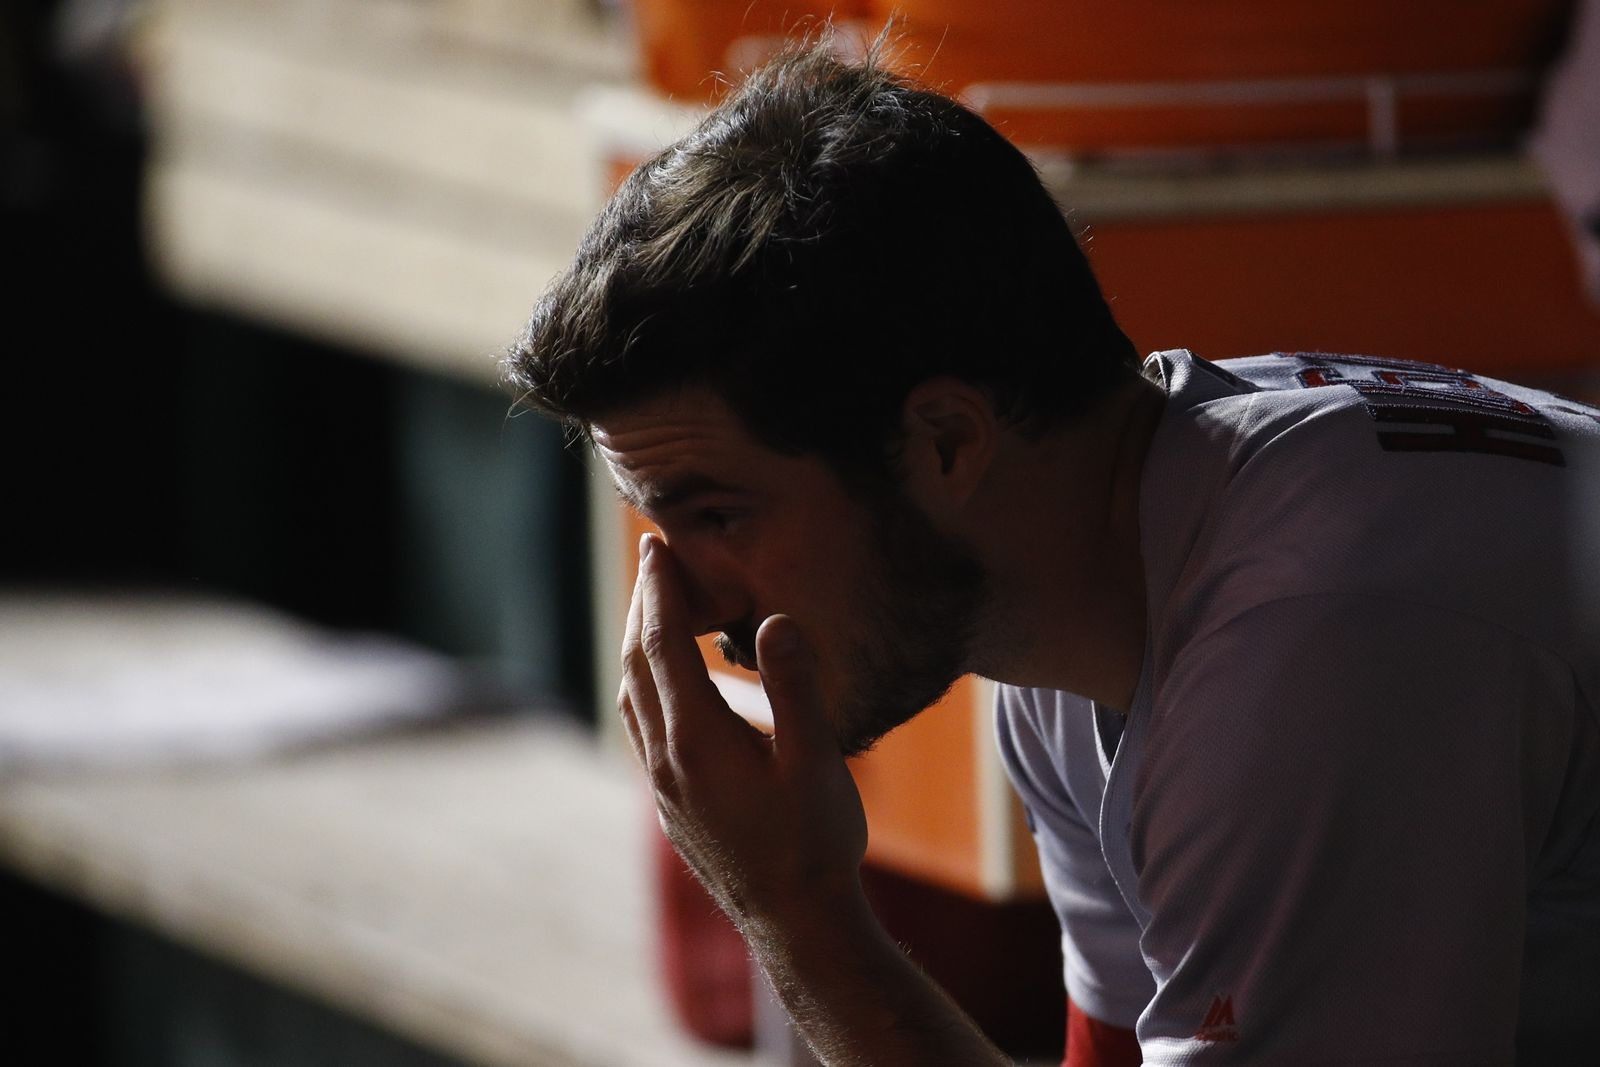 St. Louis Cardinals starting pitcher Dakota Hudson sits on the bench after being relieved during the first inning of Game 4 of the baseball National League Championship Series against the Washington Nationals Tuesday, Oct. 15, 2019, in Washington. (AP Photo/Patrick Semansky)